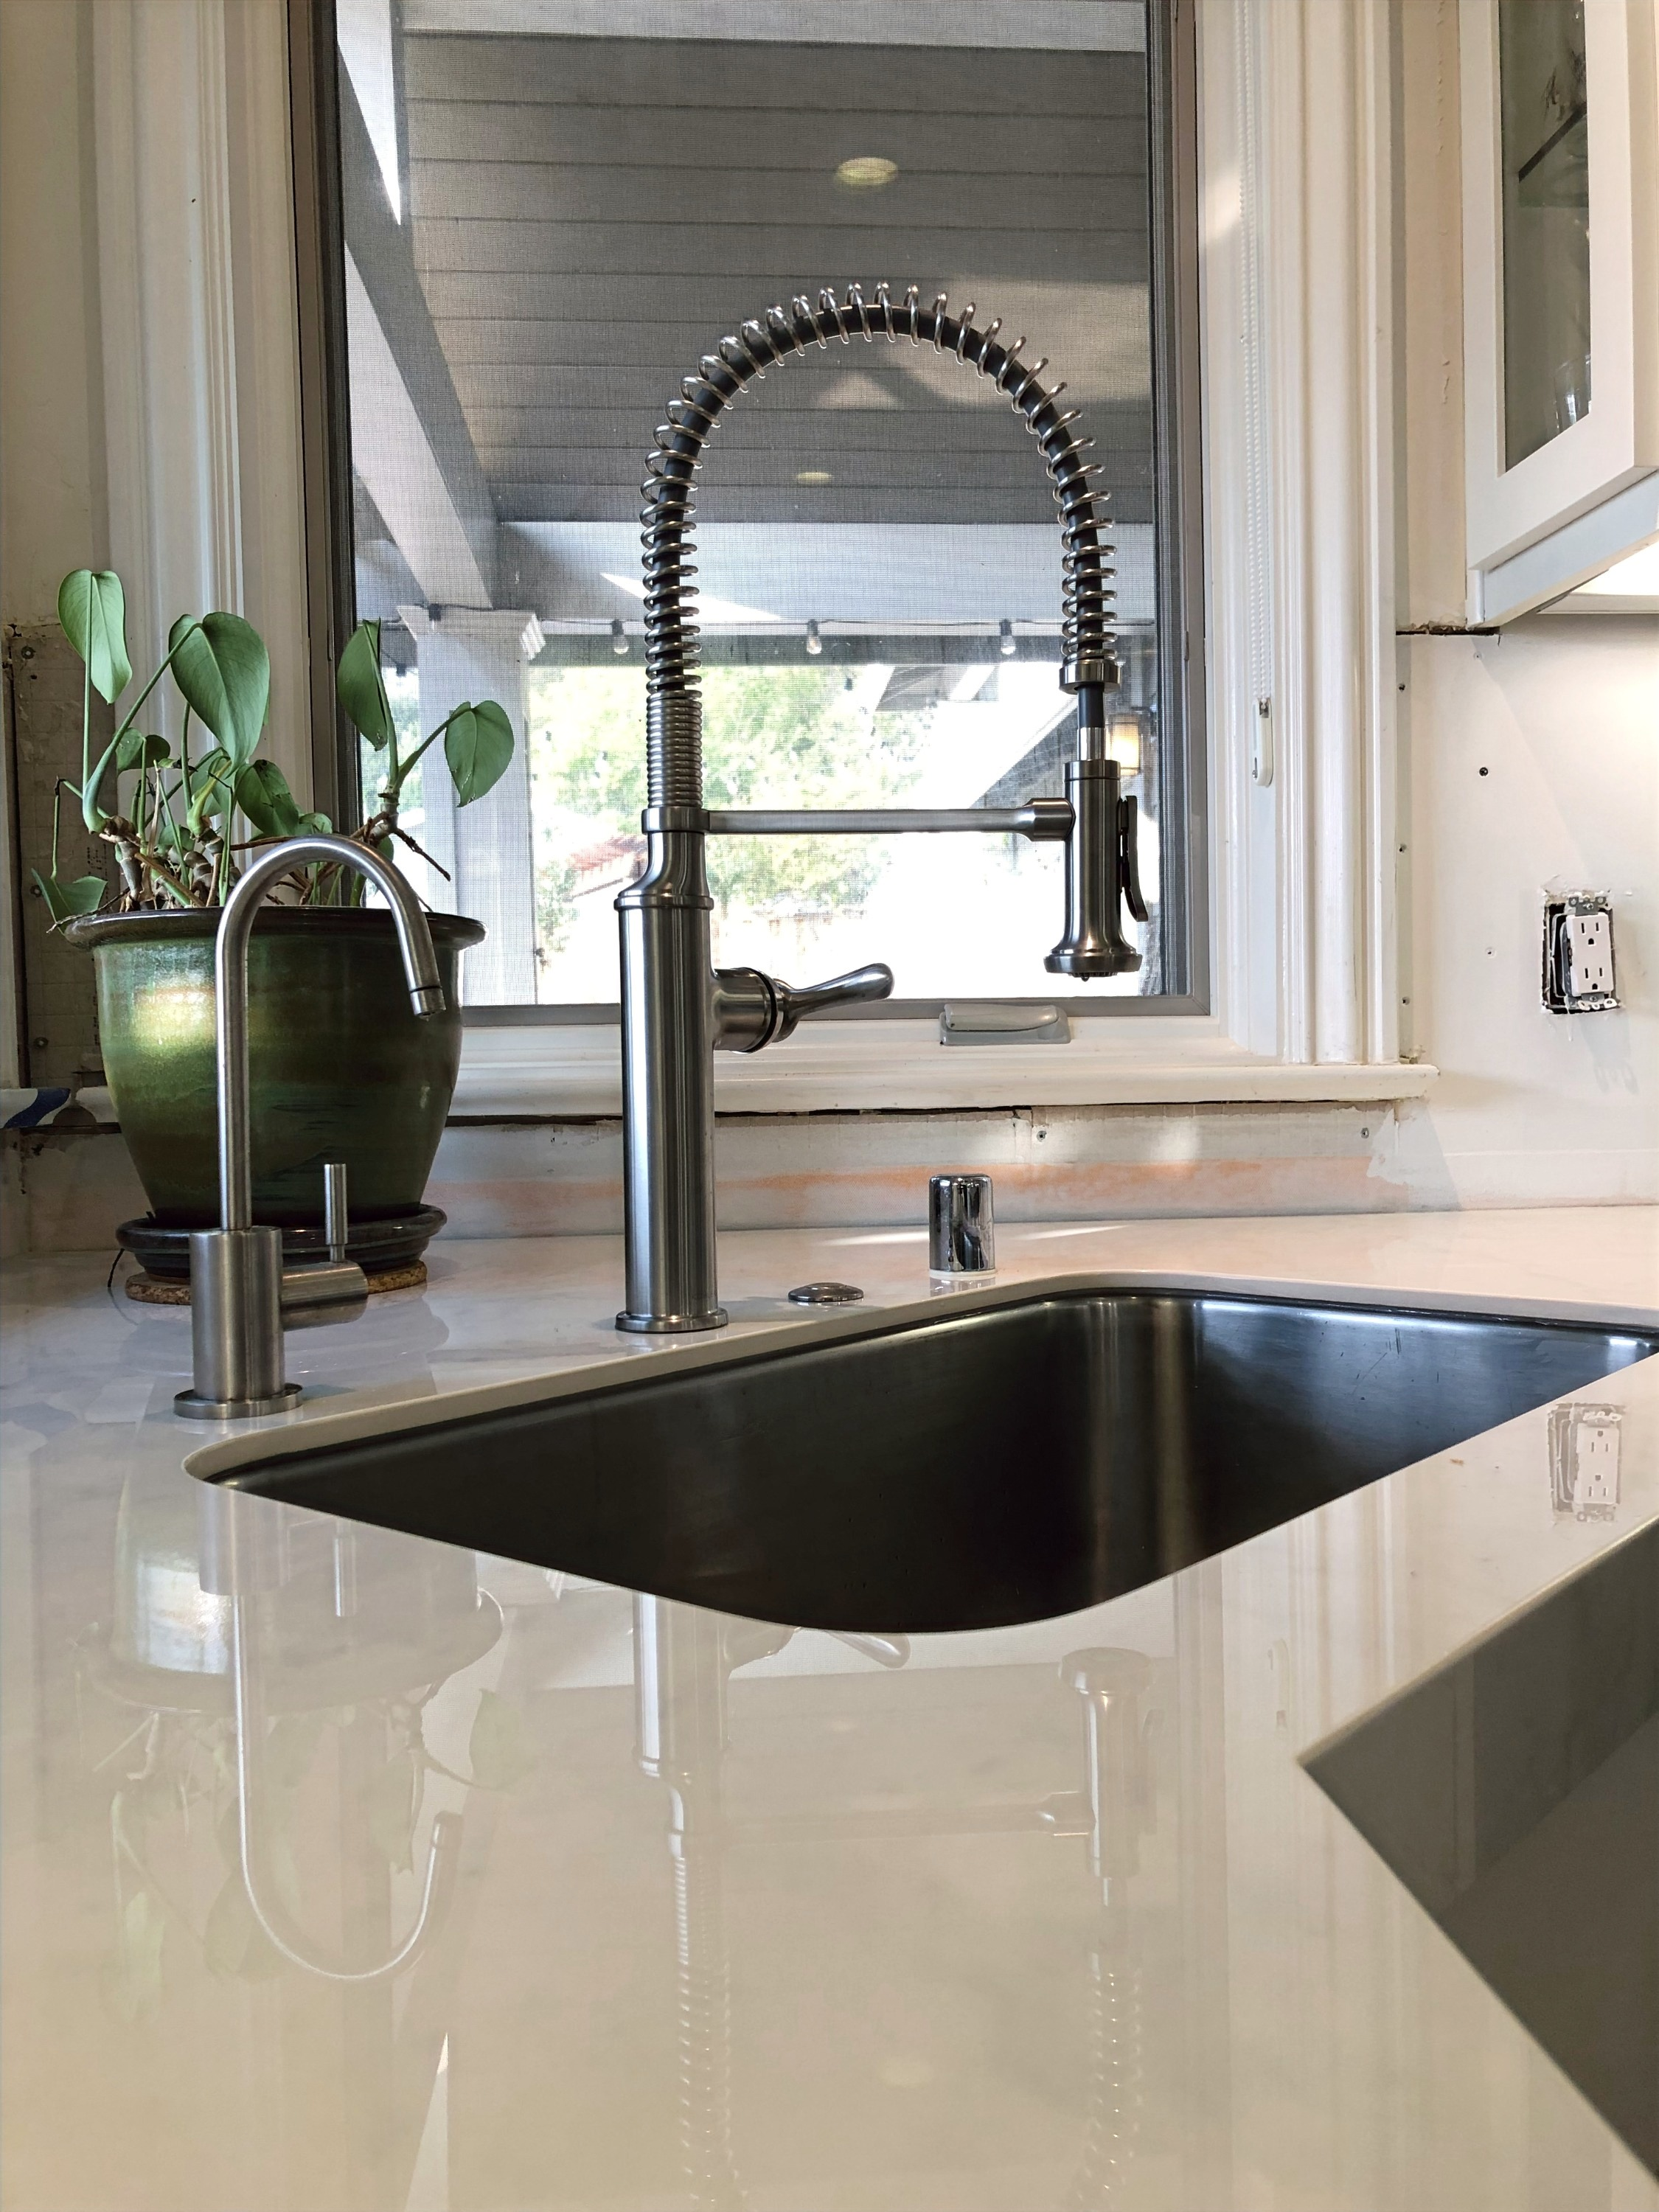 Gorgeous new farmhouse kitchen faucet